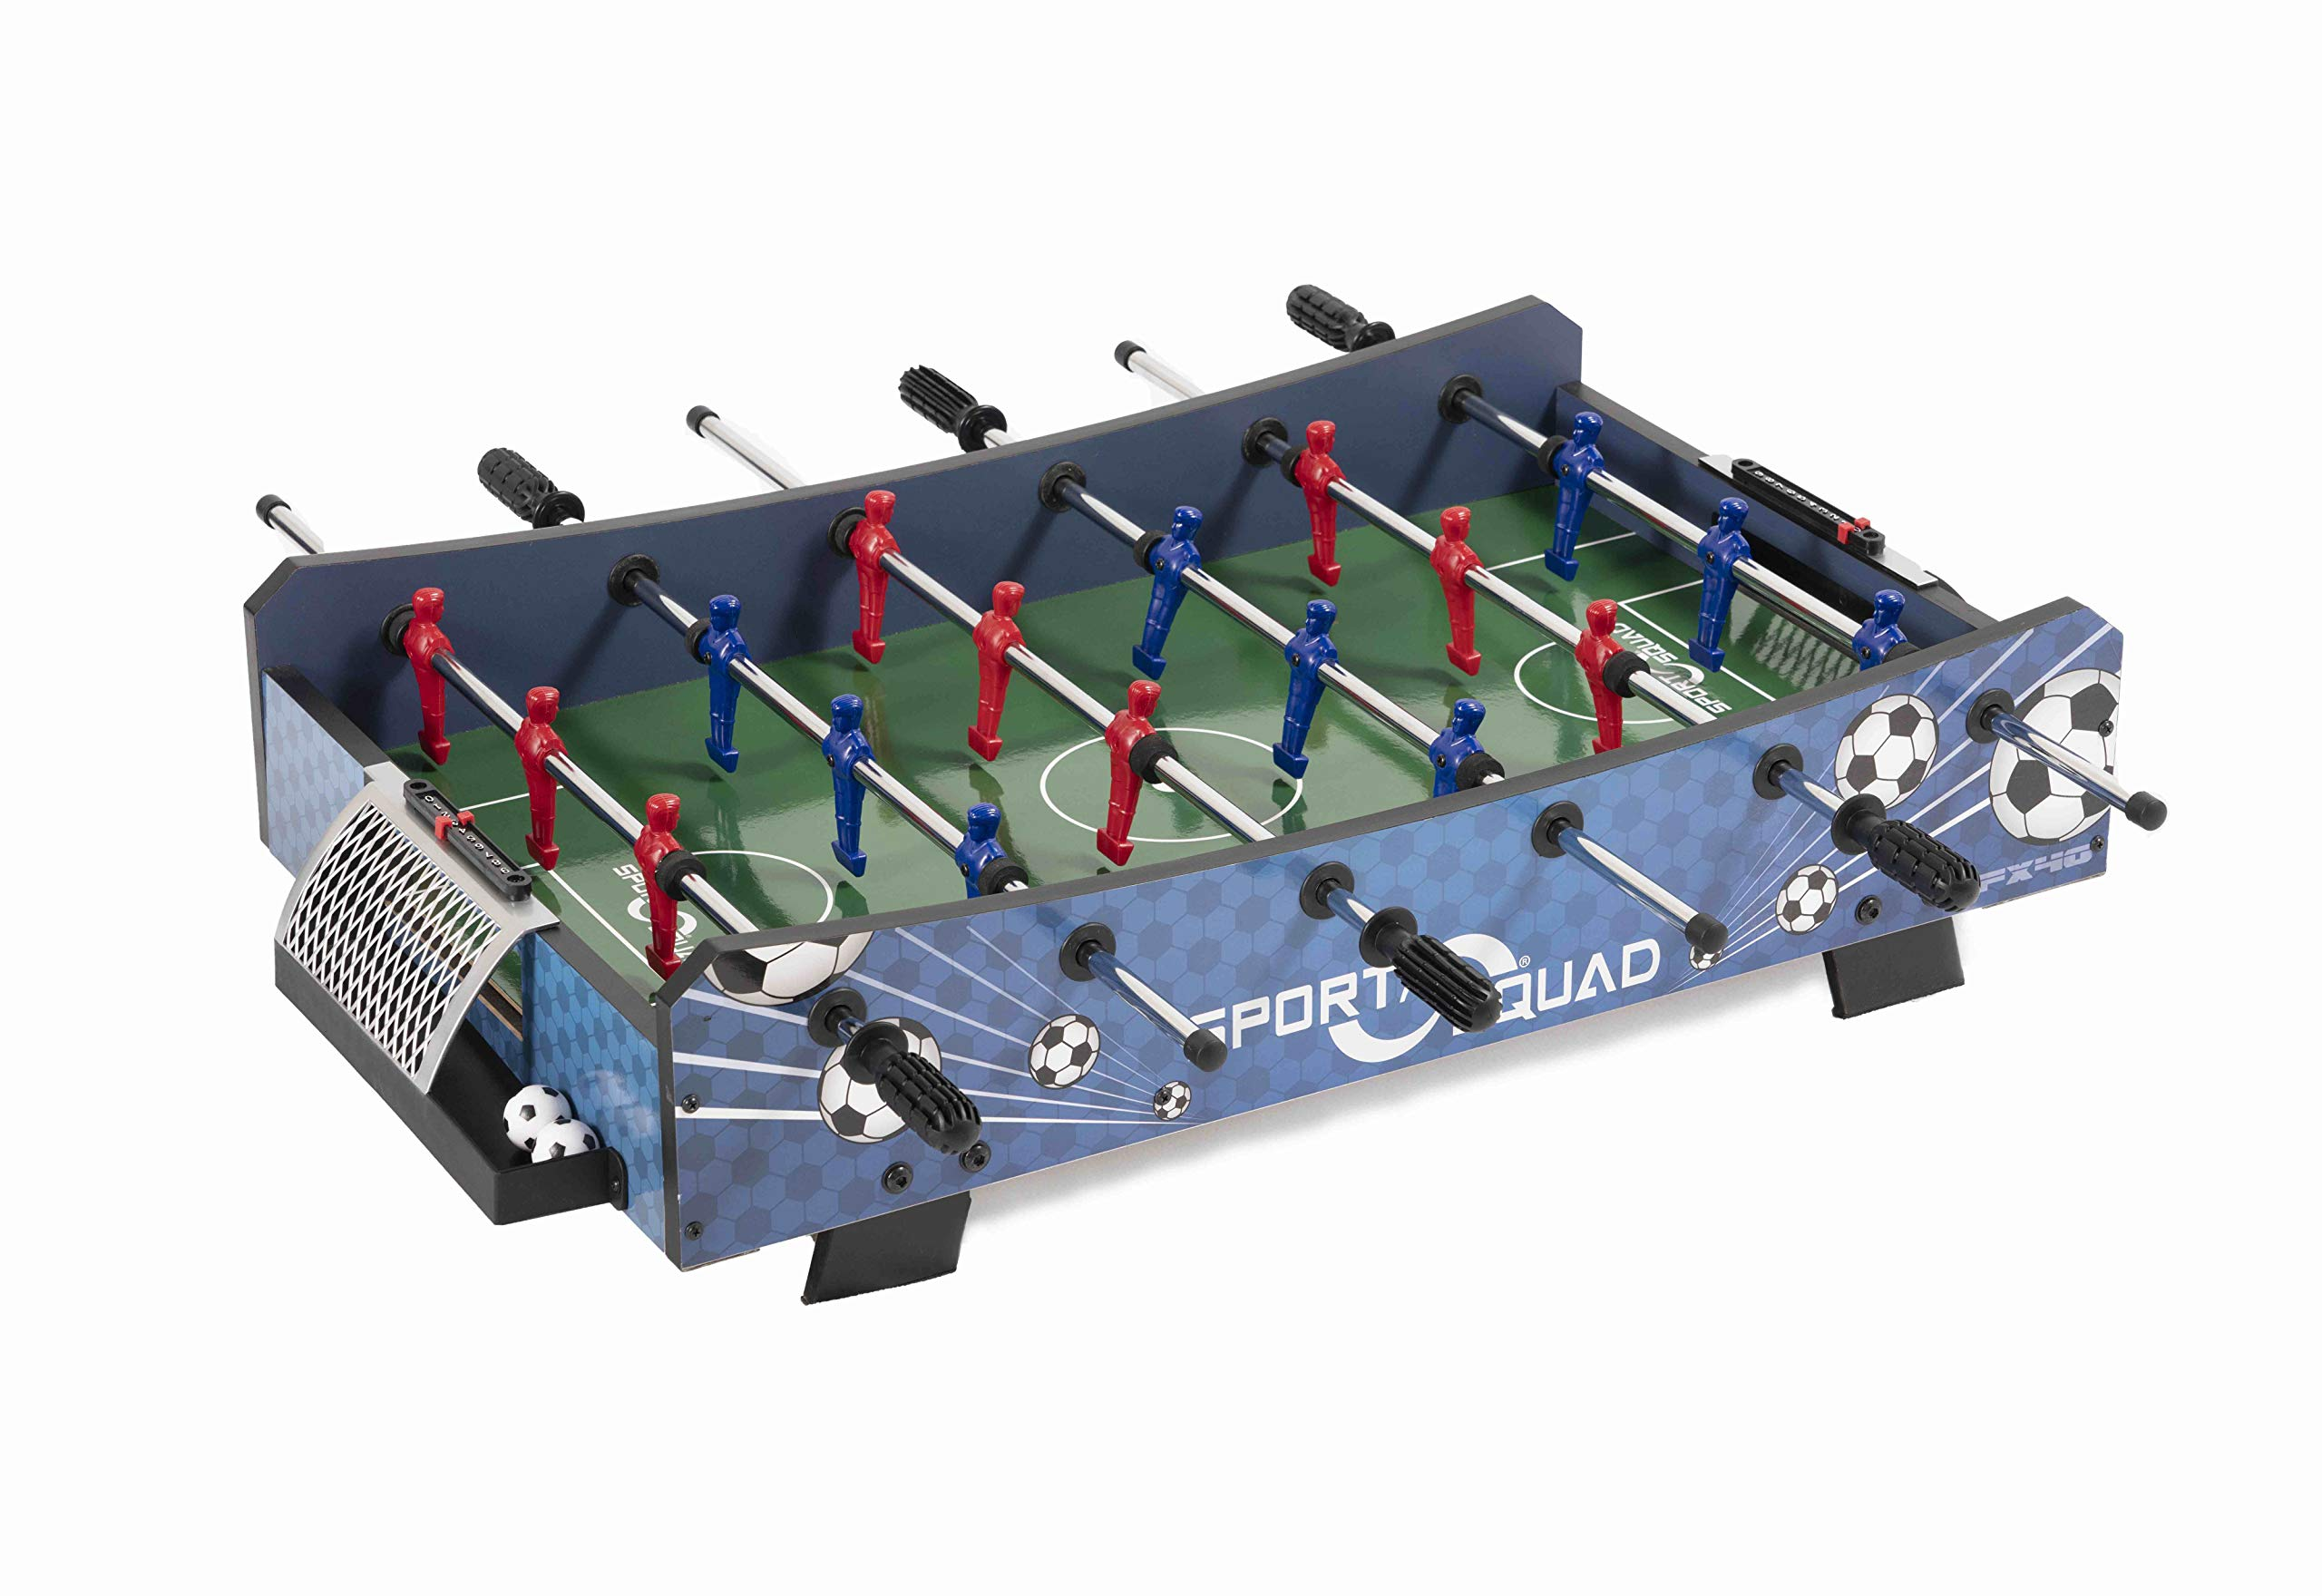 Sport Squad FX40 40 inch Table Top Foosball Table for Adults and Kids - Compact Mini Tabletop Soccer Game - Portable Recreational Hand Soccer for Game Room & Family Game Night - Incl. 2 Foosball Balls by JOOLA